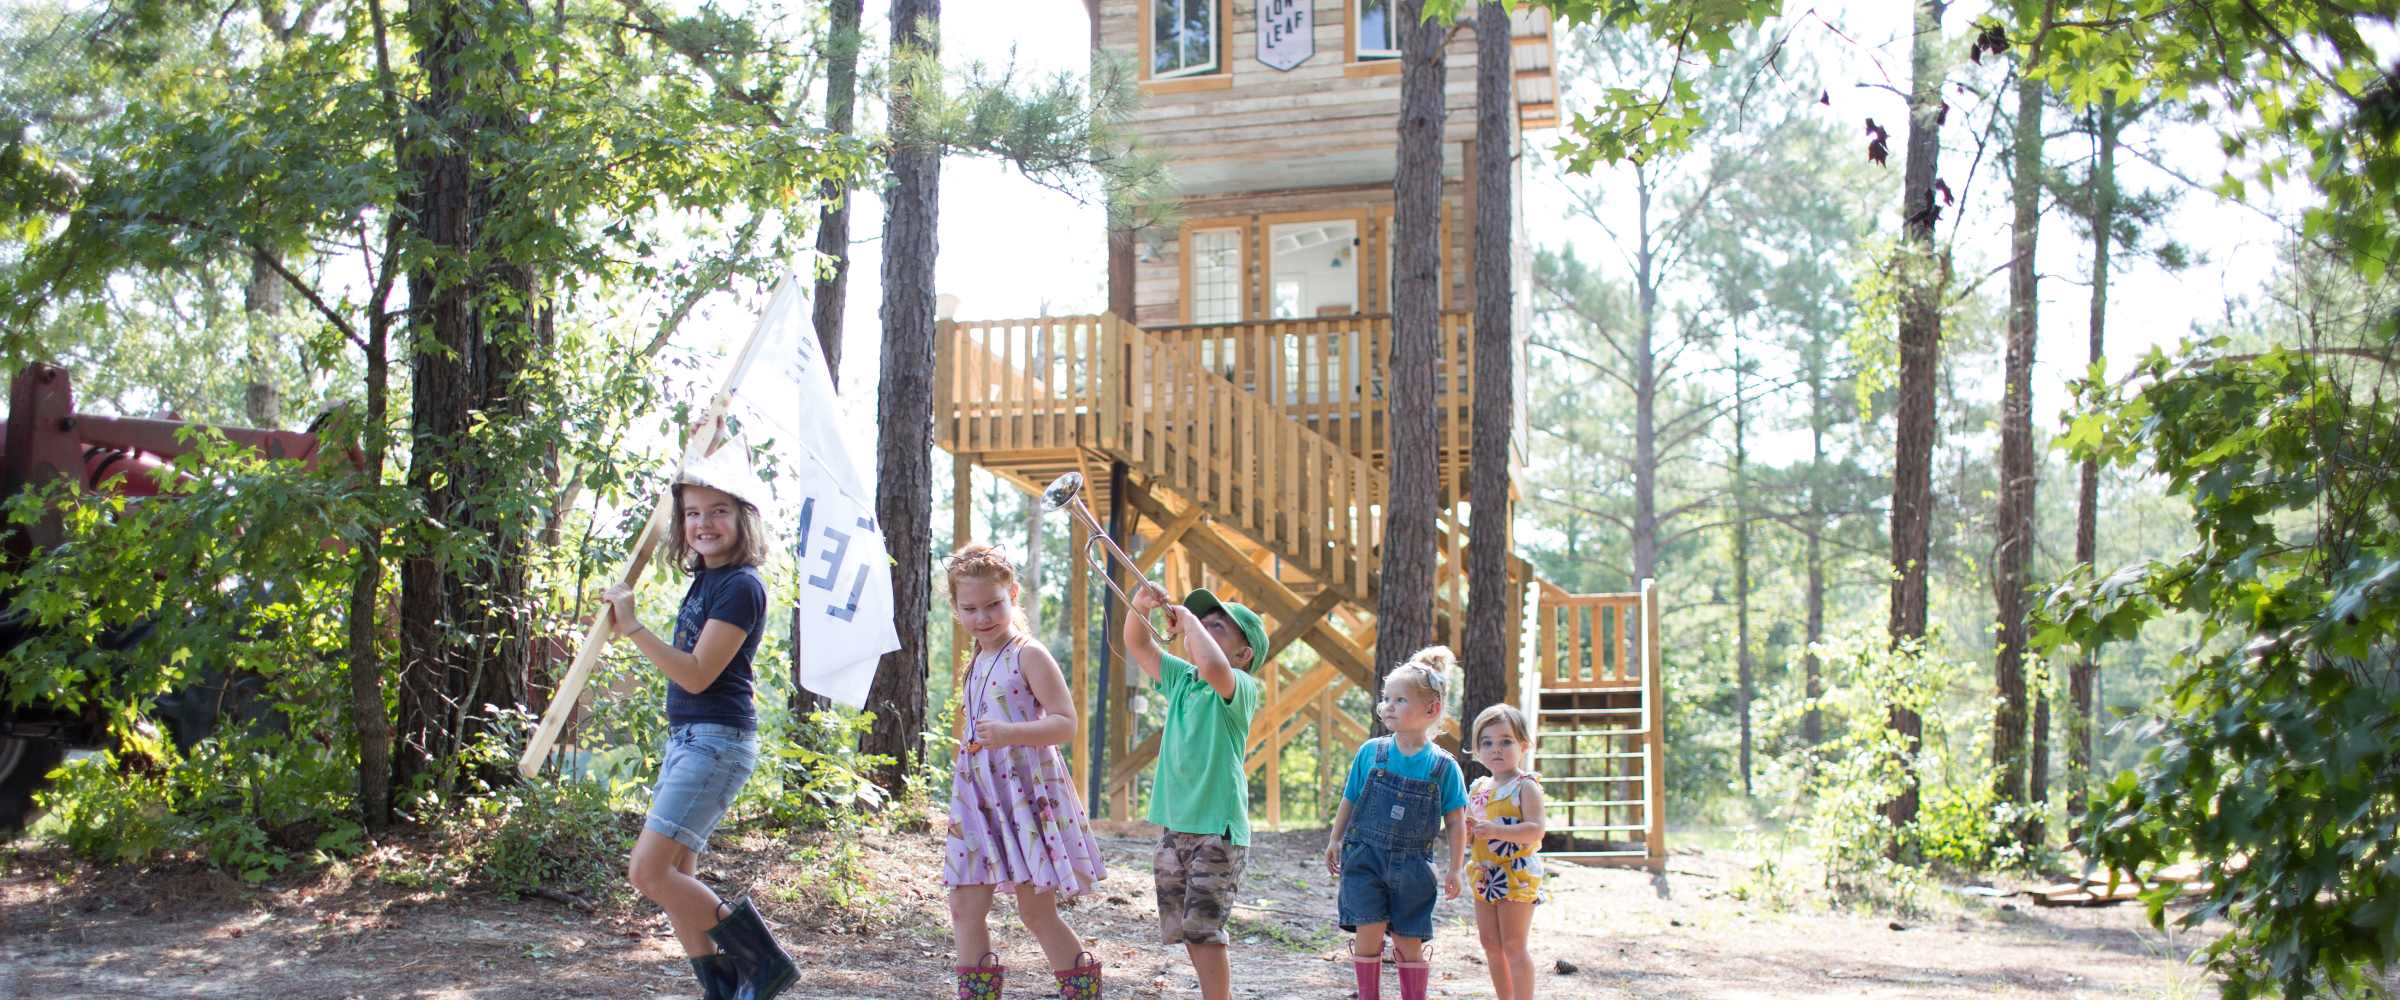 A Treehouse in the Pines - Inspiration for a Rustic Retreat for Kids